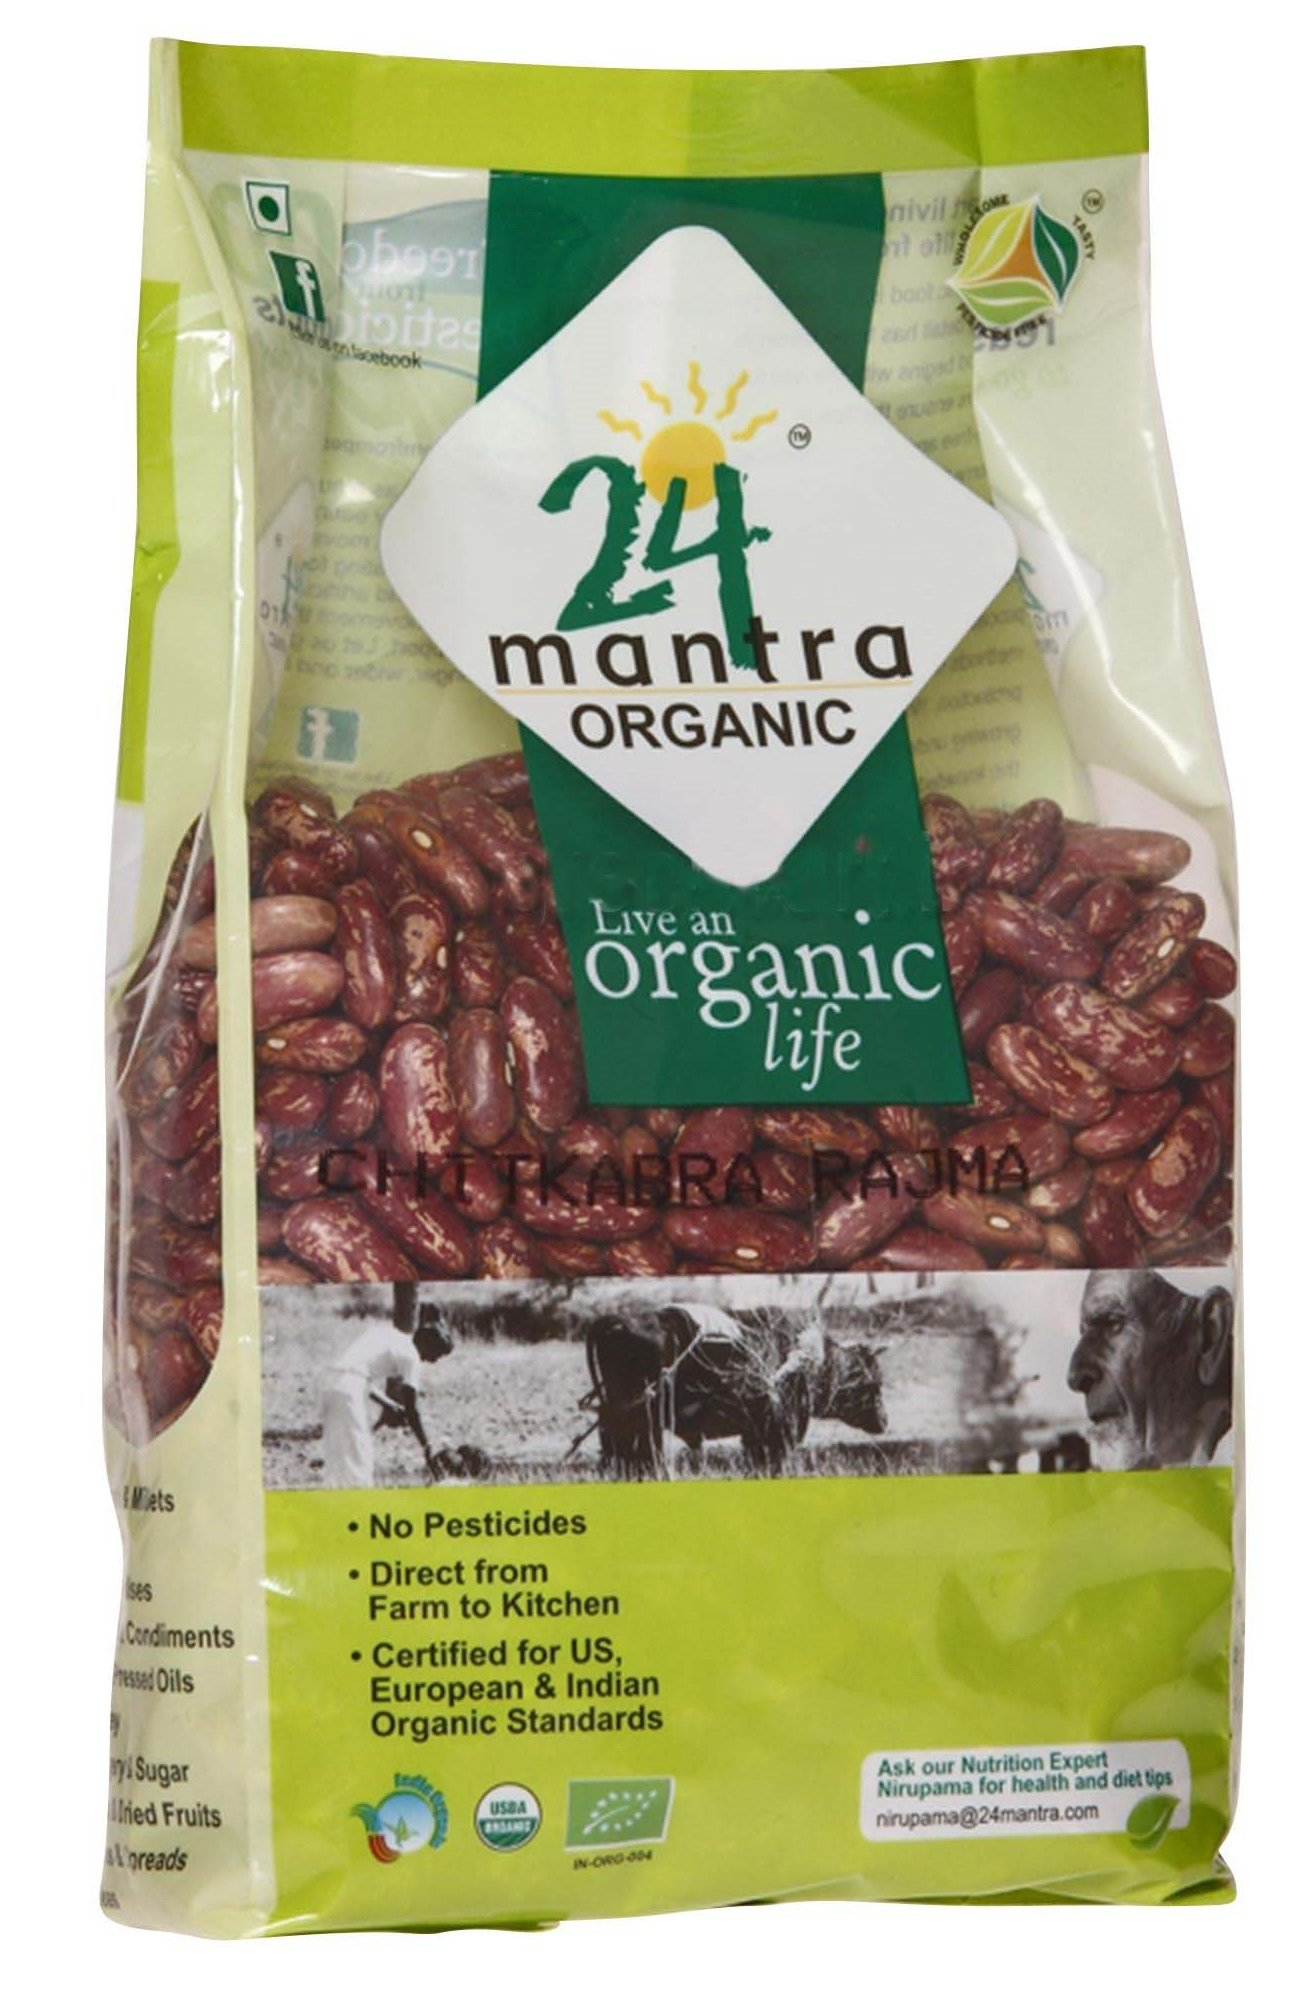 Organic Coriander Powder - Coriander Seeds Powder - ★ USDA Certified Organic - ★ European Union Certified Organic - ★ Pesticides Free - ★ Adulteration Free - ★ Sodium Free - Pack of 2 X 7 Ounces(14 Ounces) - 24 Mantra Organic by 24 MANTRA (Image #6)